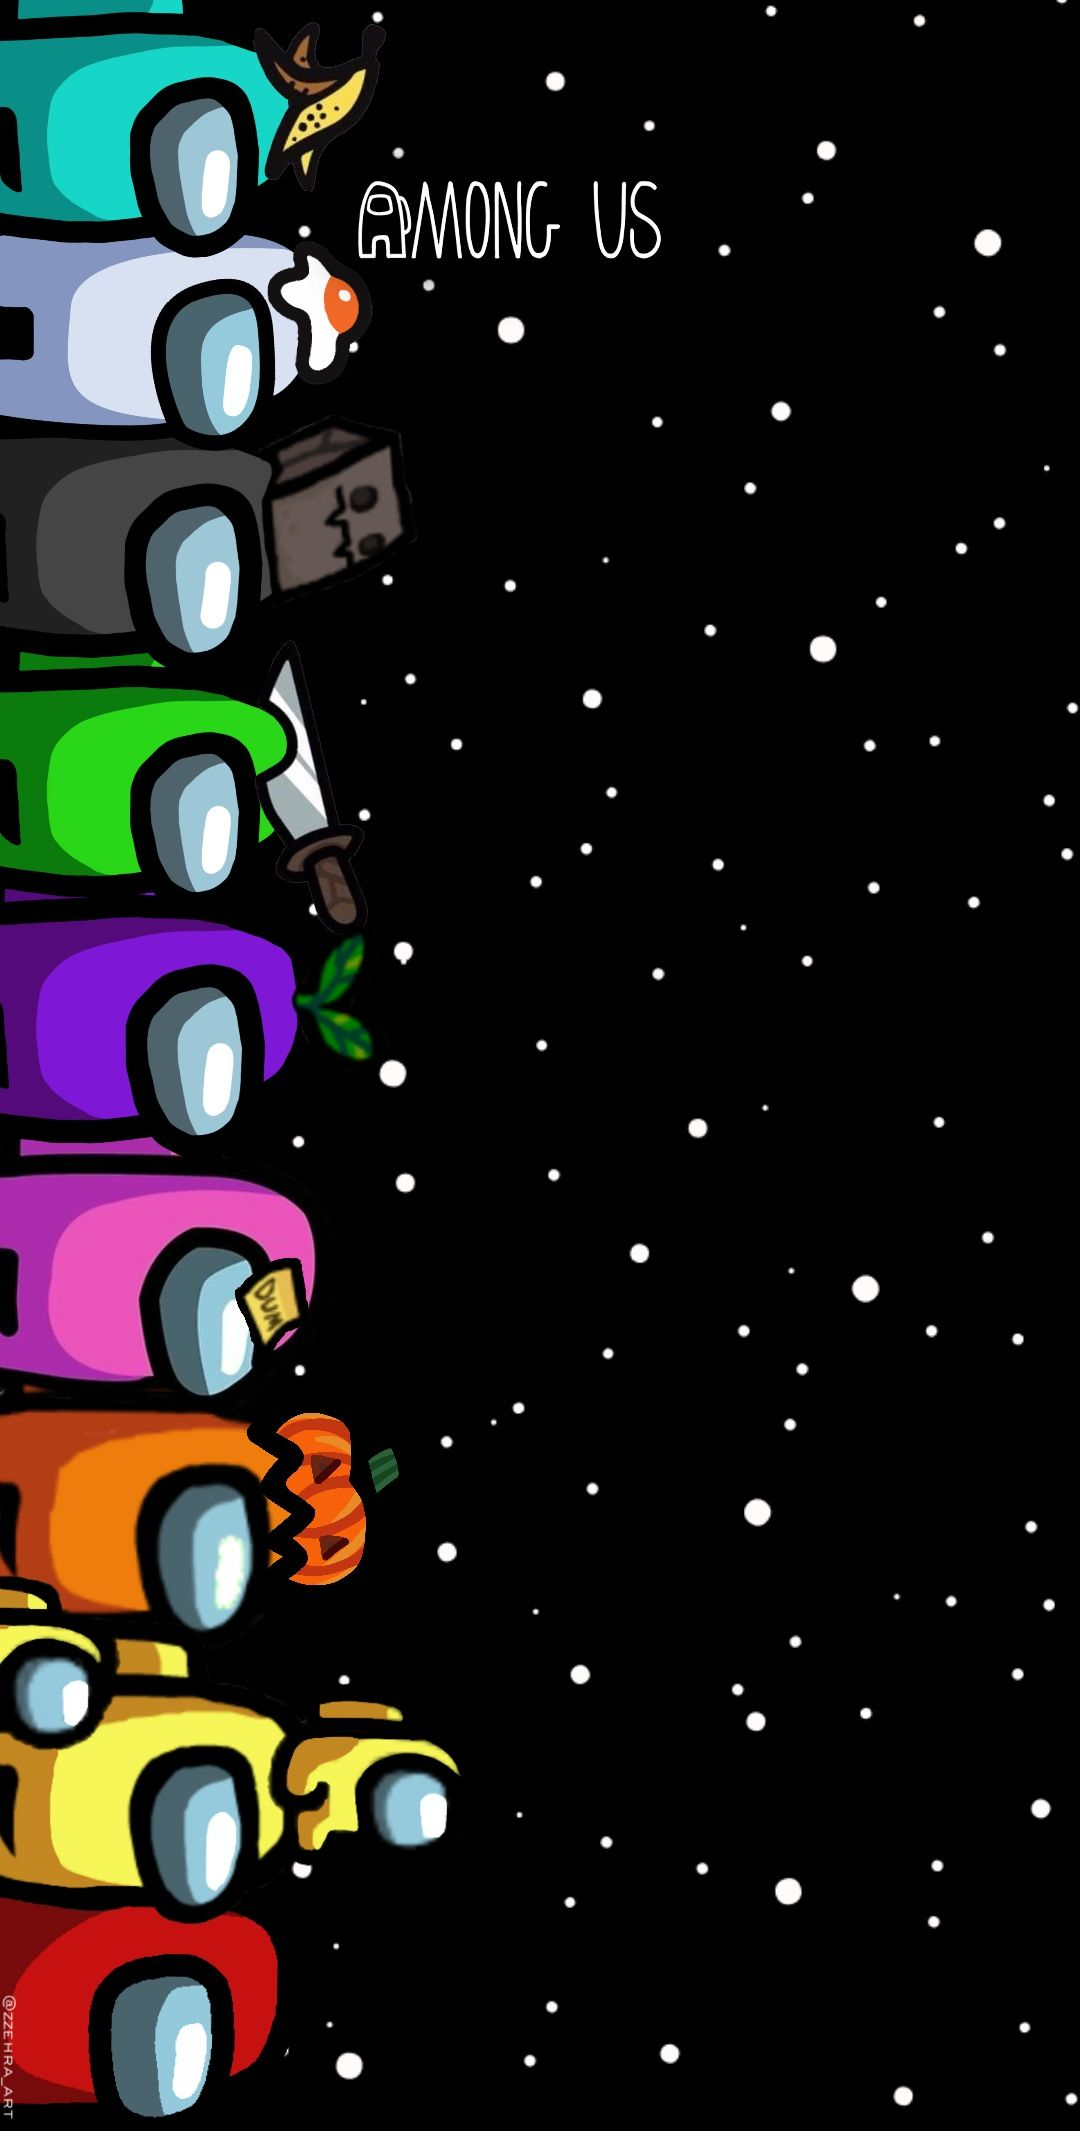 Freetoedit Amongus Game Wallpaper Black Remixed From Zehra Art Cool Backgrounds Wallpapers Wallpaper Iphone Cute Cute Christmas Wallpaper